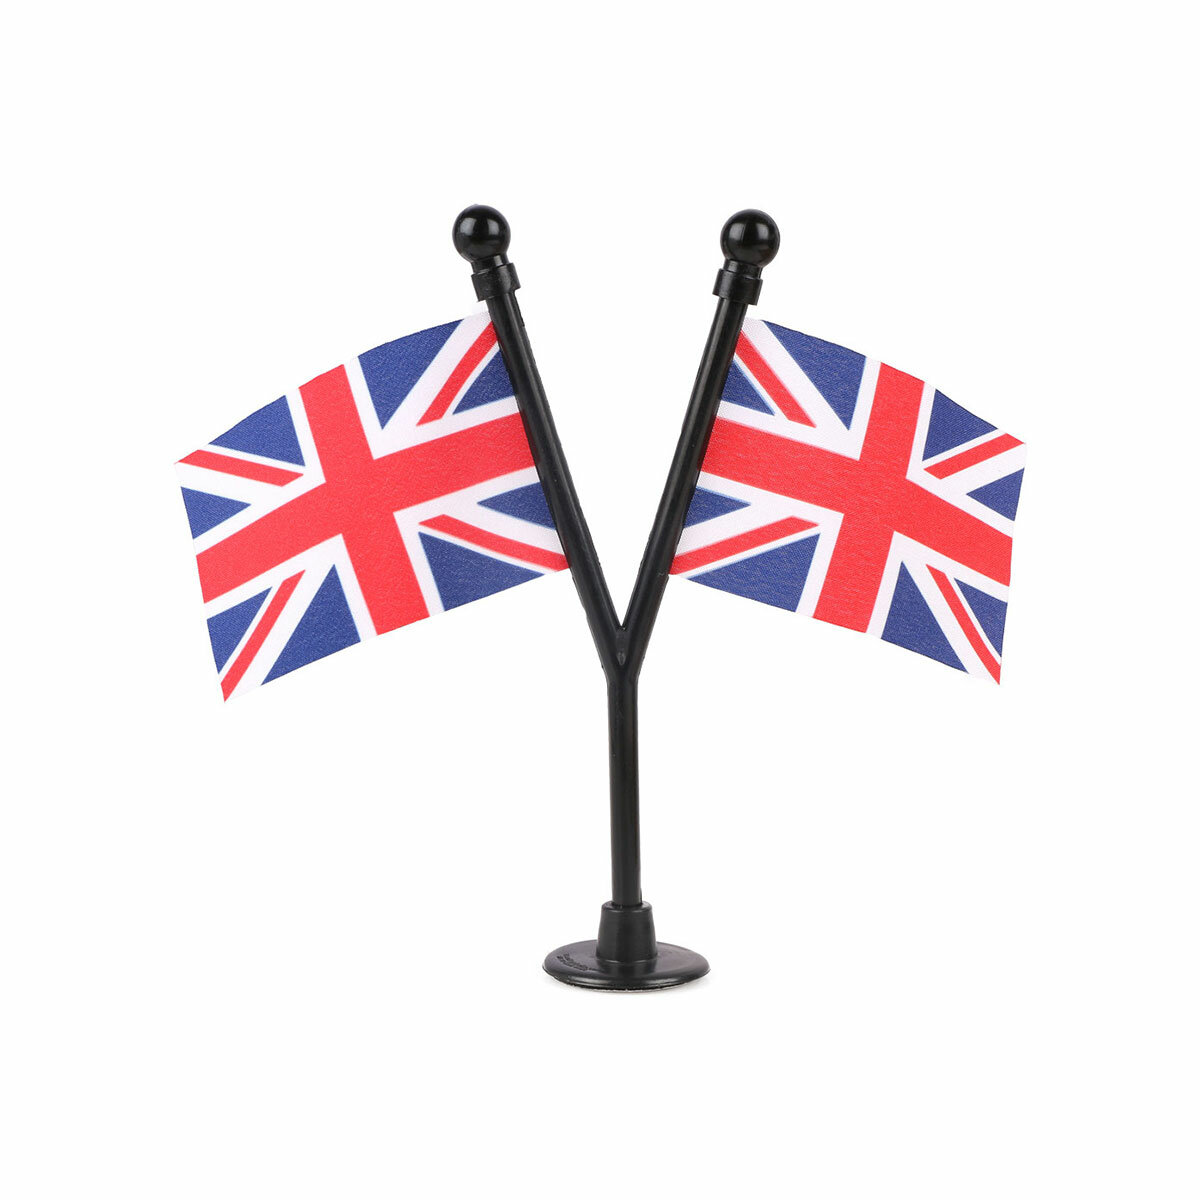 dual uk car dashboard flags with a black plastic stand / base